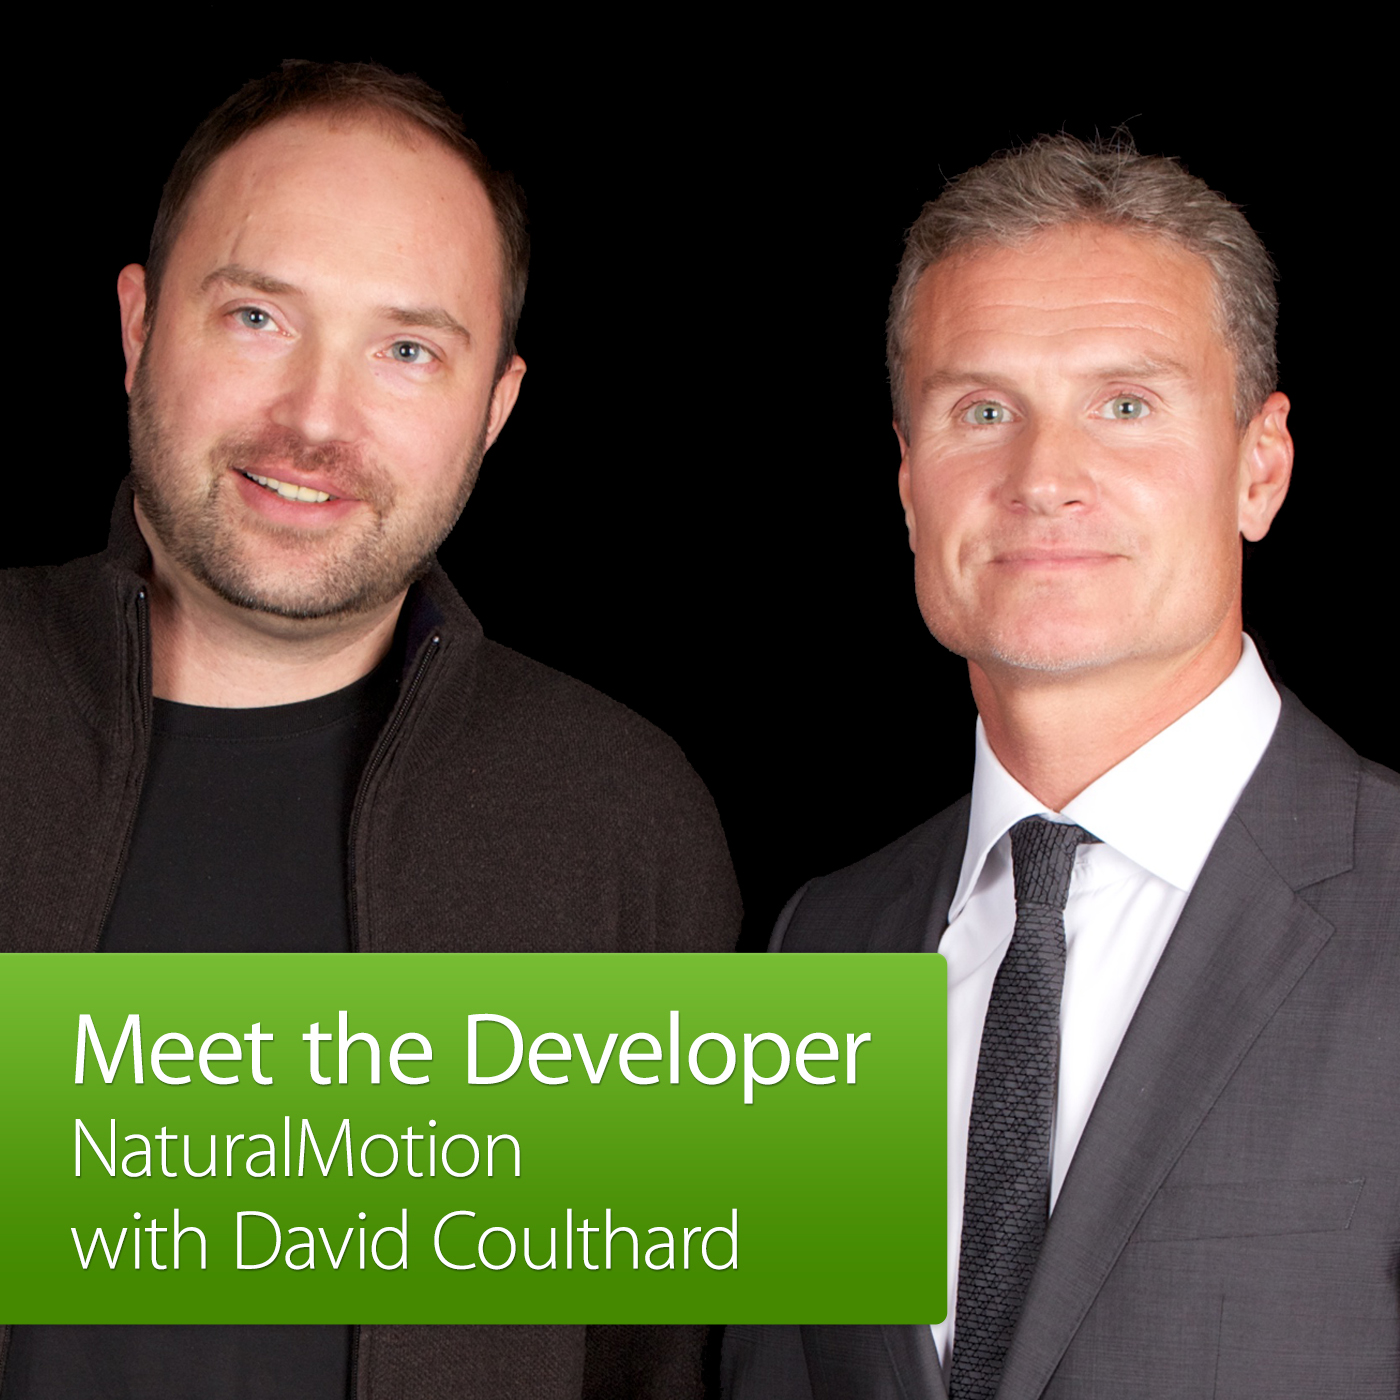 NaturalMotion with David Coulthard: Meet the Developer